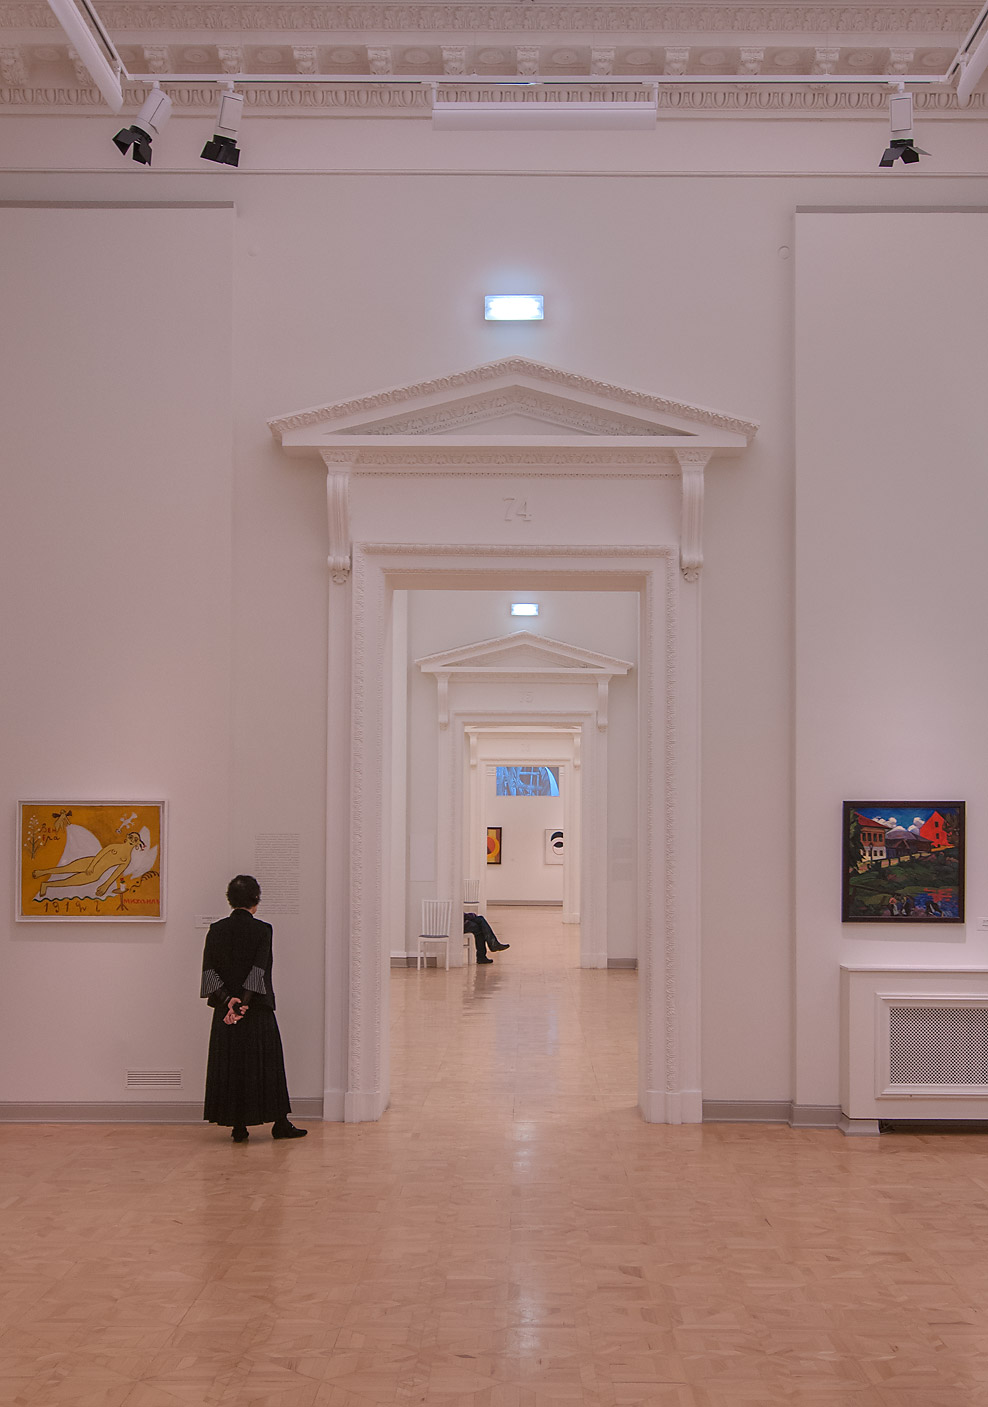 Room No. 74 in Benois Wing of Russian Museum. St.Petersburg, Russia